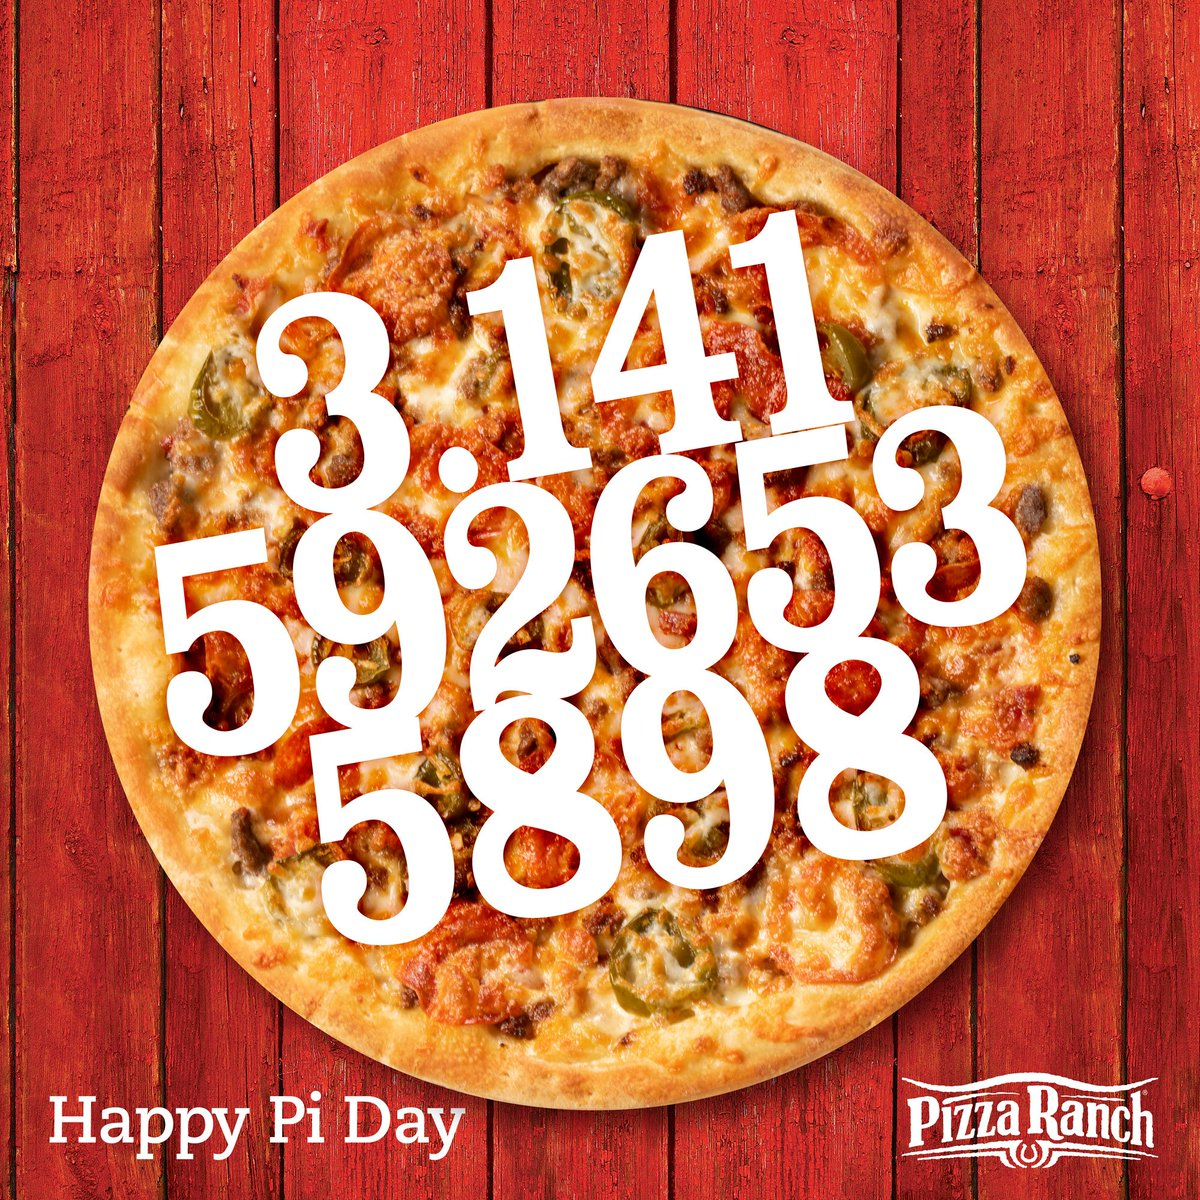 Celebrate #piday with the most legendary pizza pi! 🍕 What's your favorite pi combination at Pizza Ranch?  Enjoy it at our Buffet Your Way or order online for carry or delivery: http://bit.ly/prpiday